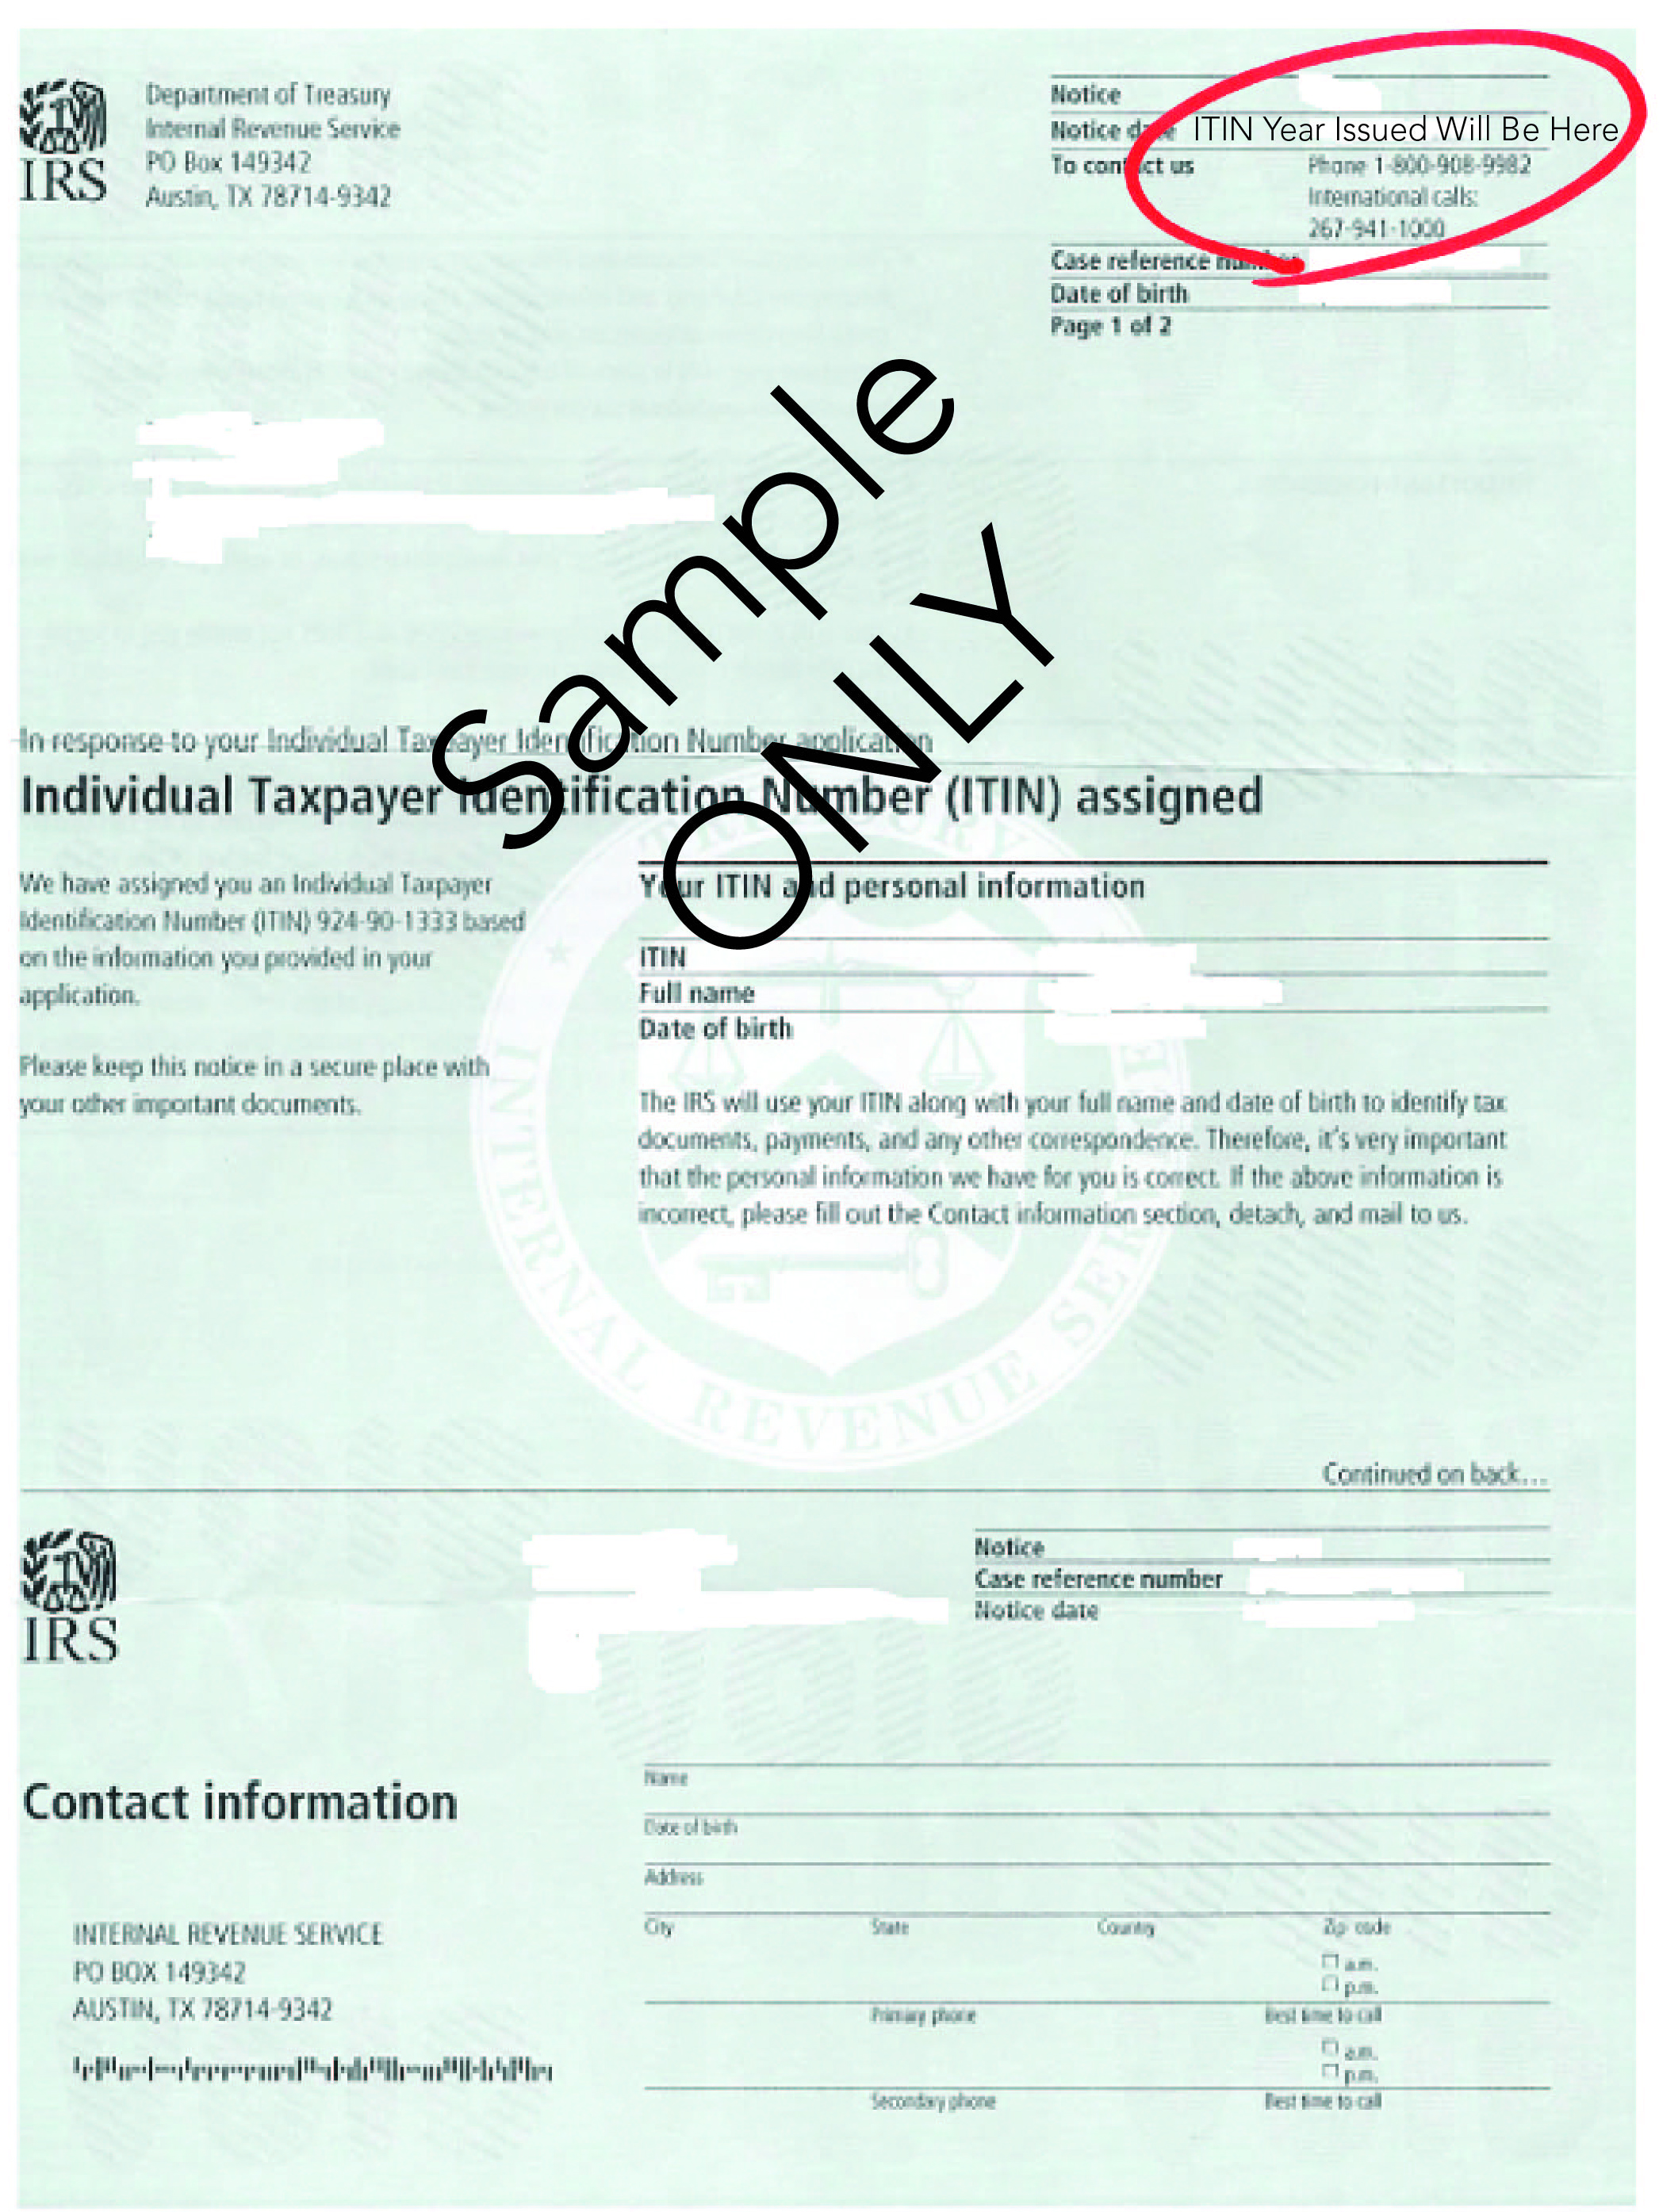 Is Your ITIN Expiring, Per New IRS Rules?